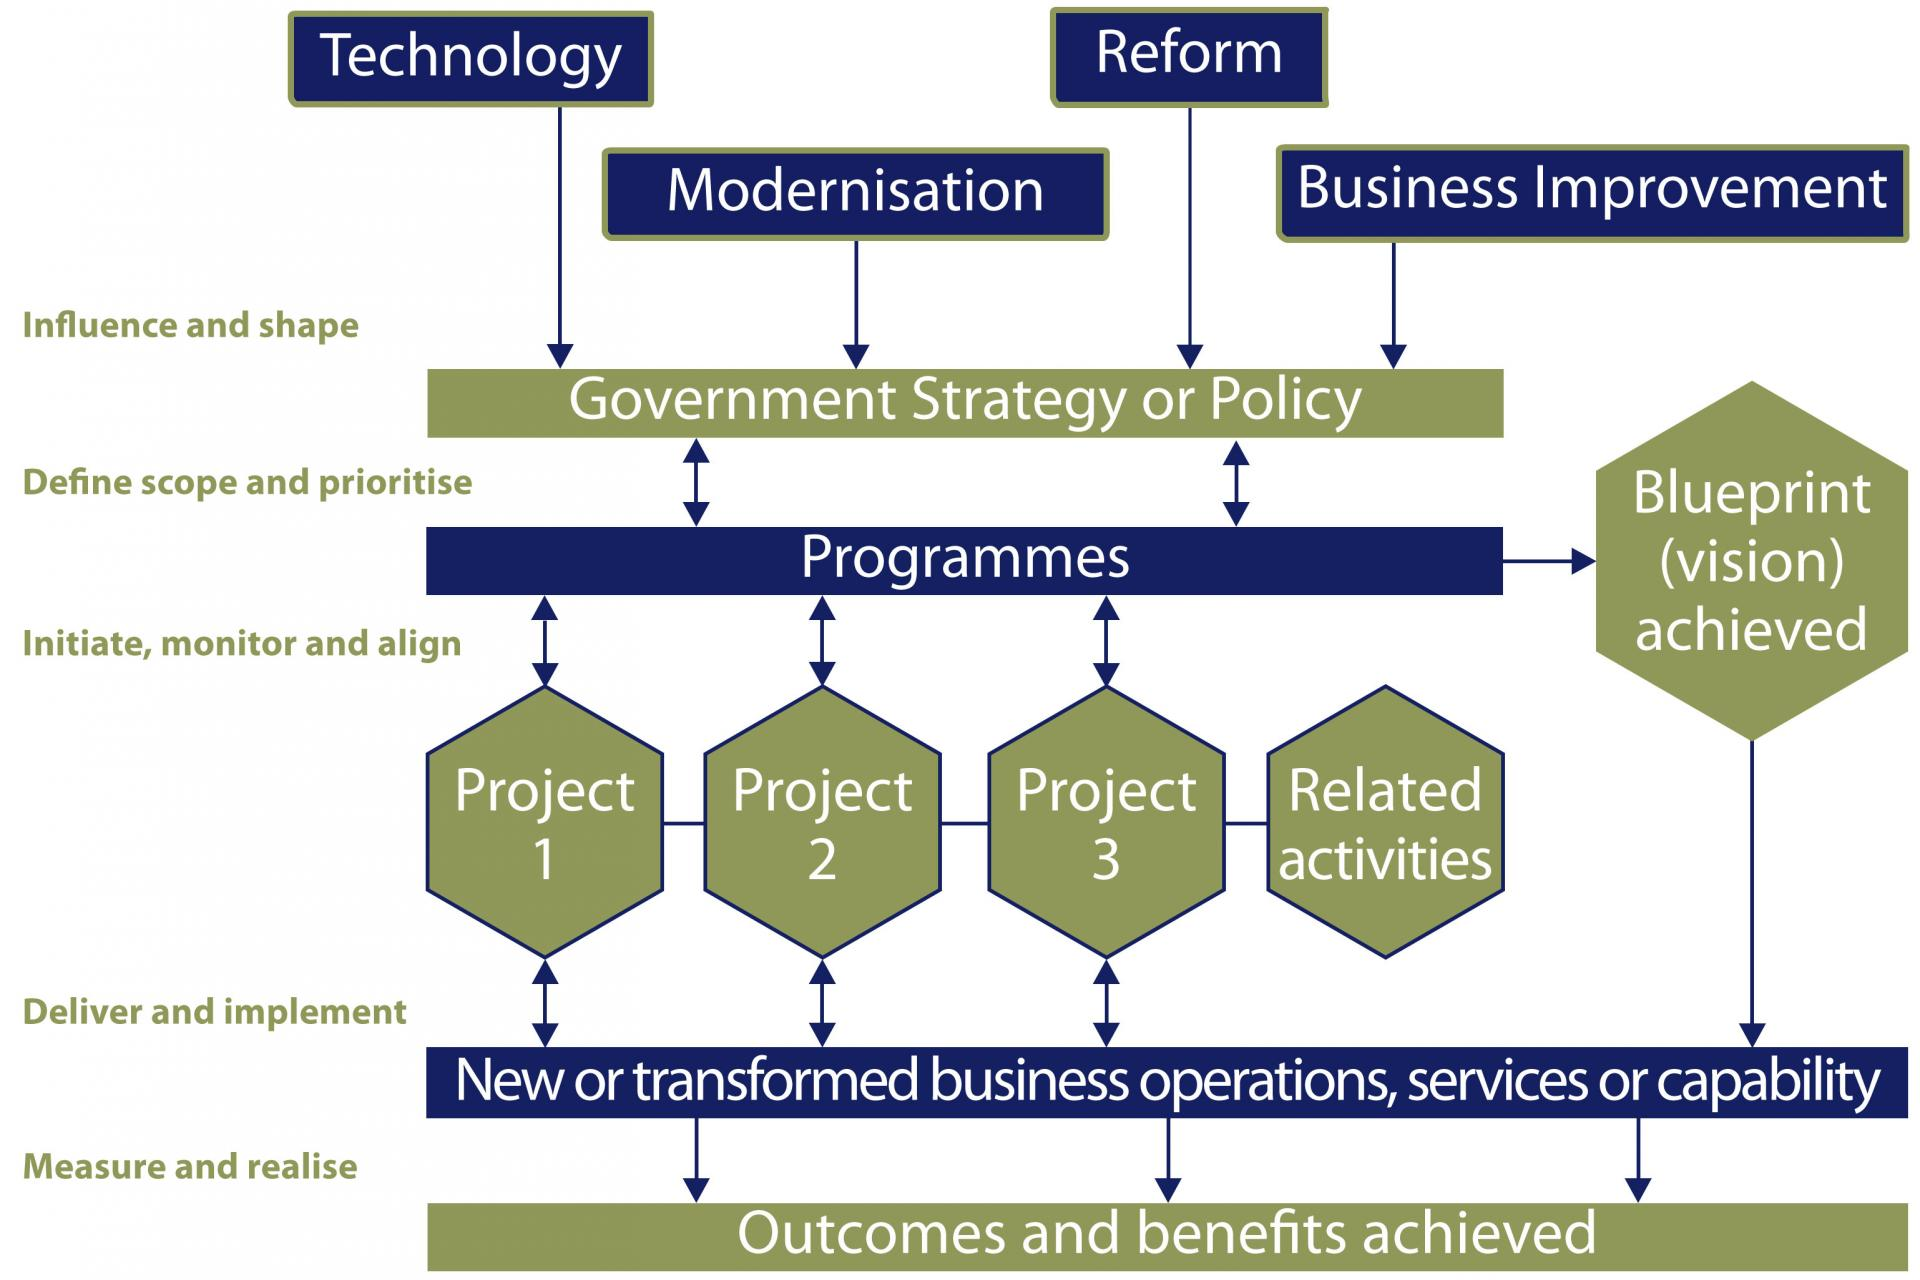 Introduction to programme management department of finance context for programmes and projects to be initiated within the ni civil service malvernweather Images